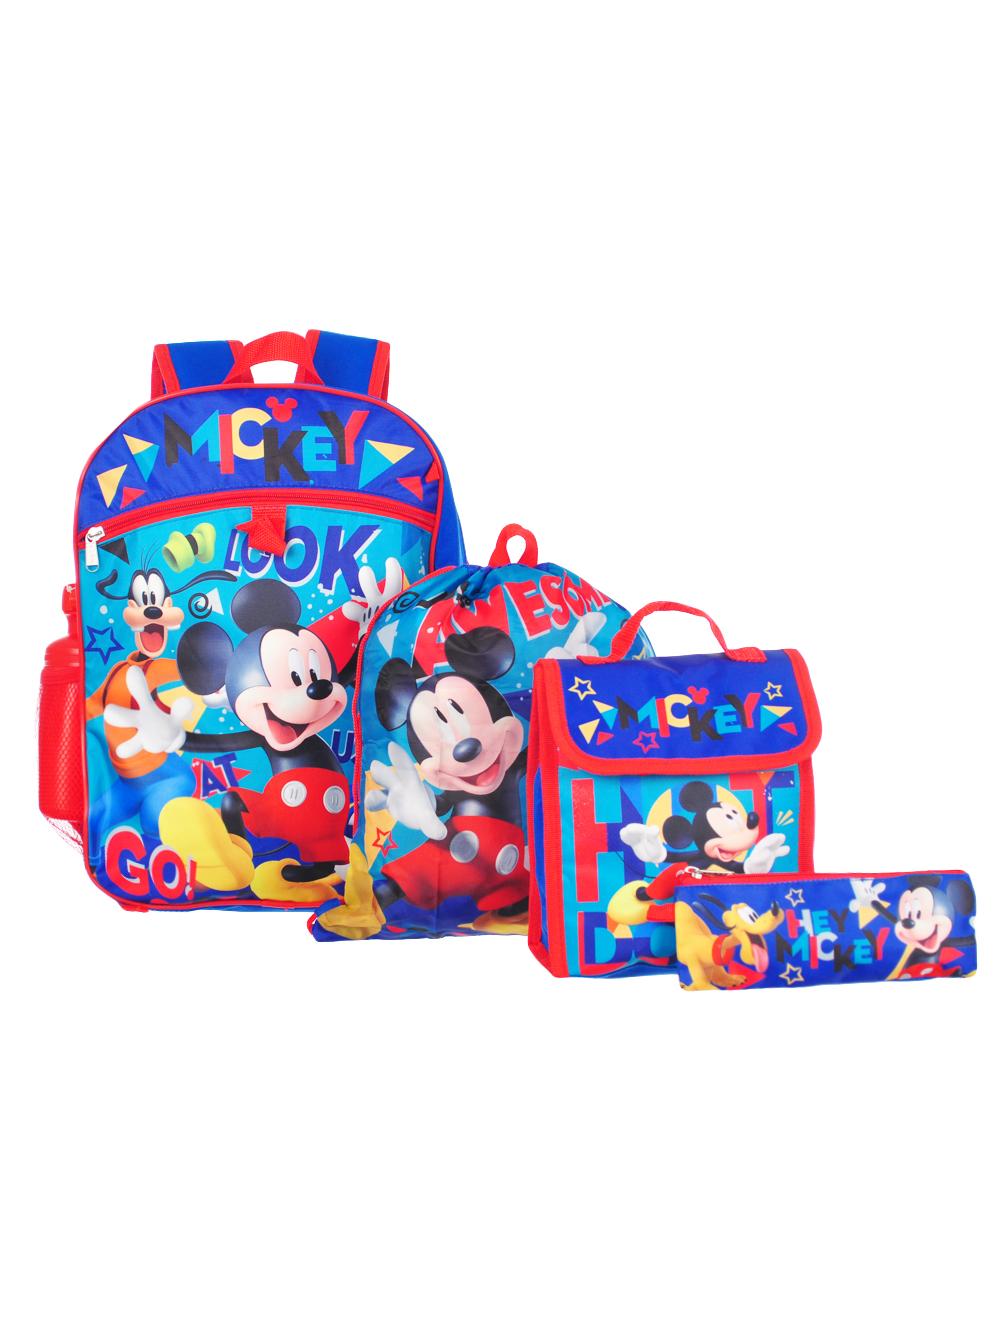 061add25296 Mickey and the Roadster Racers 5-Piece Backpack Set